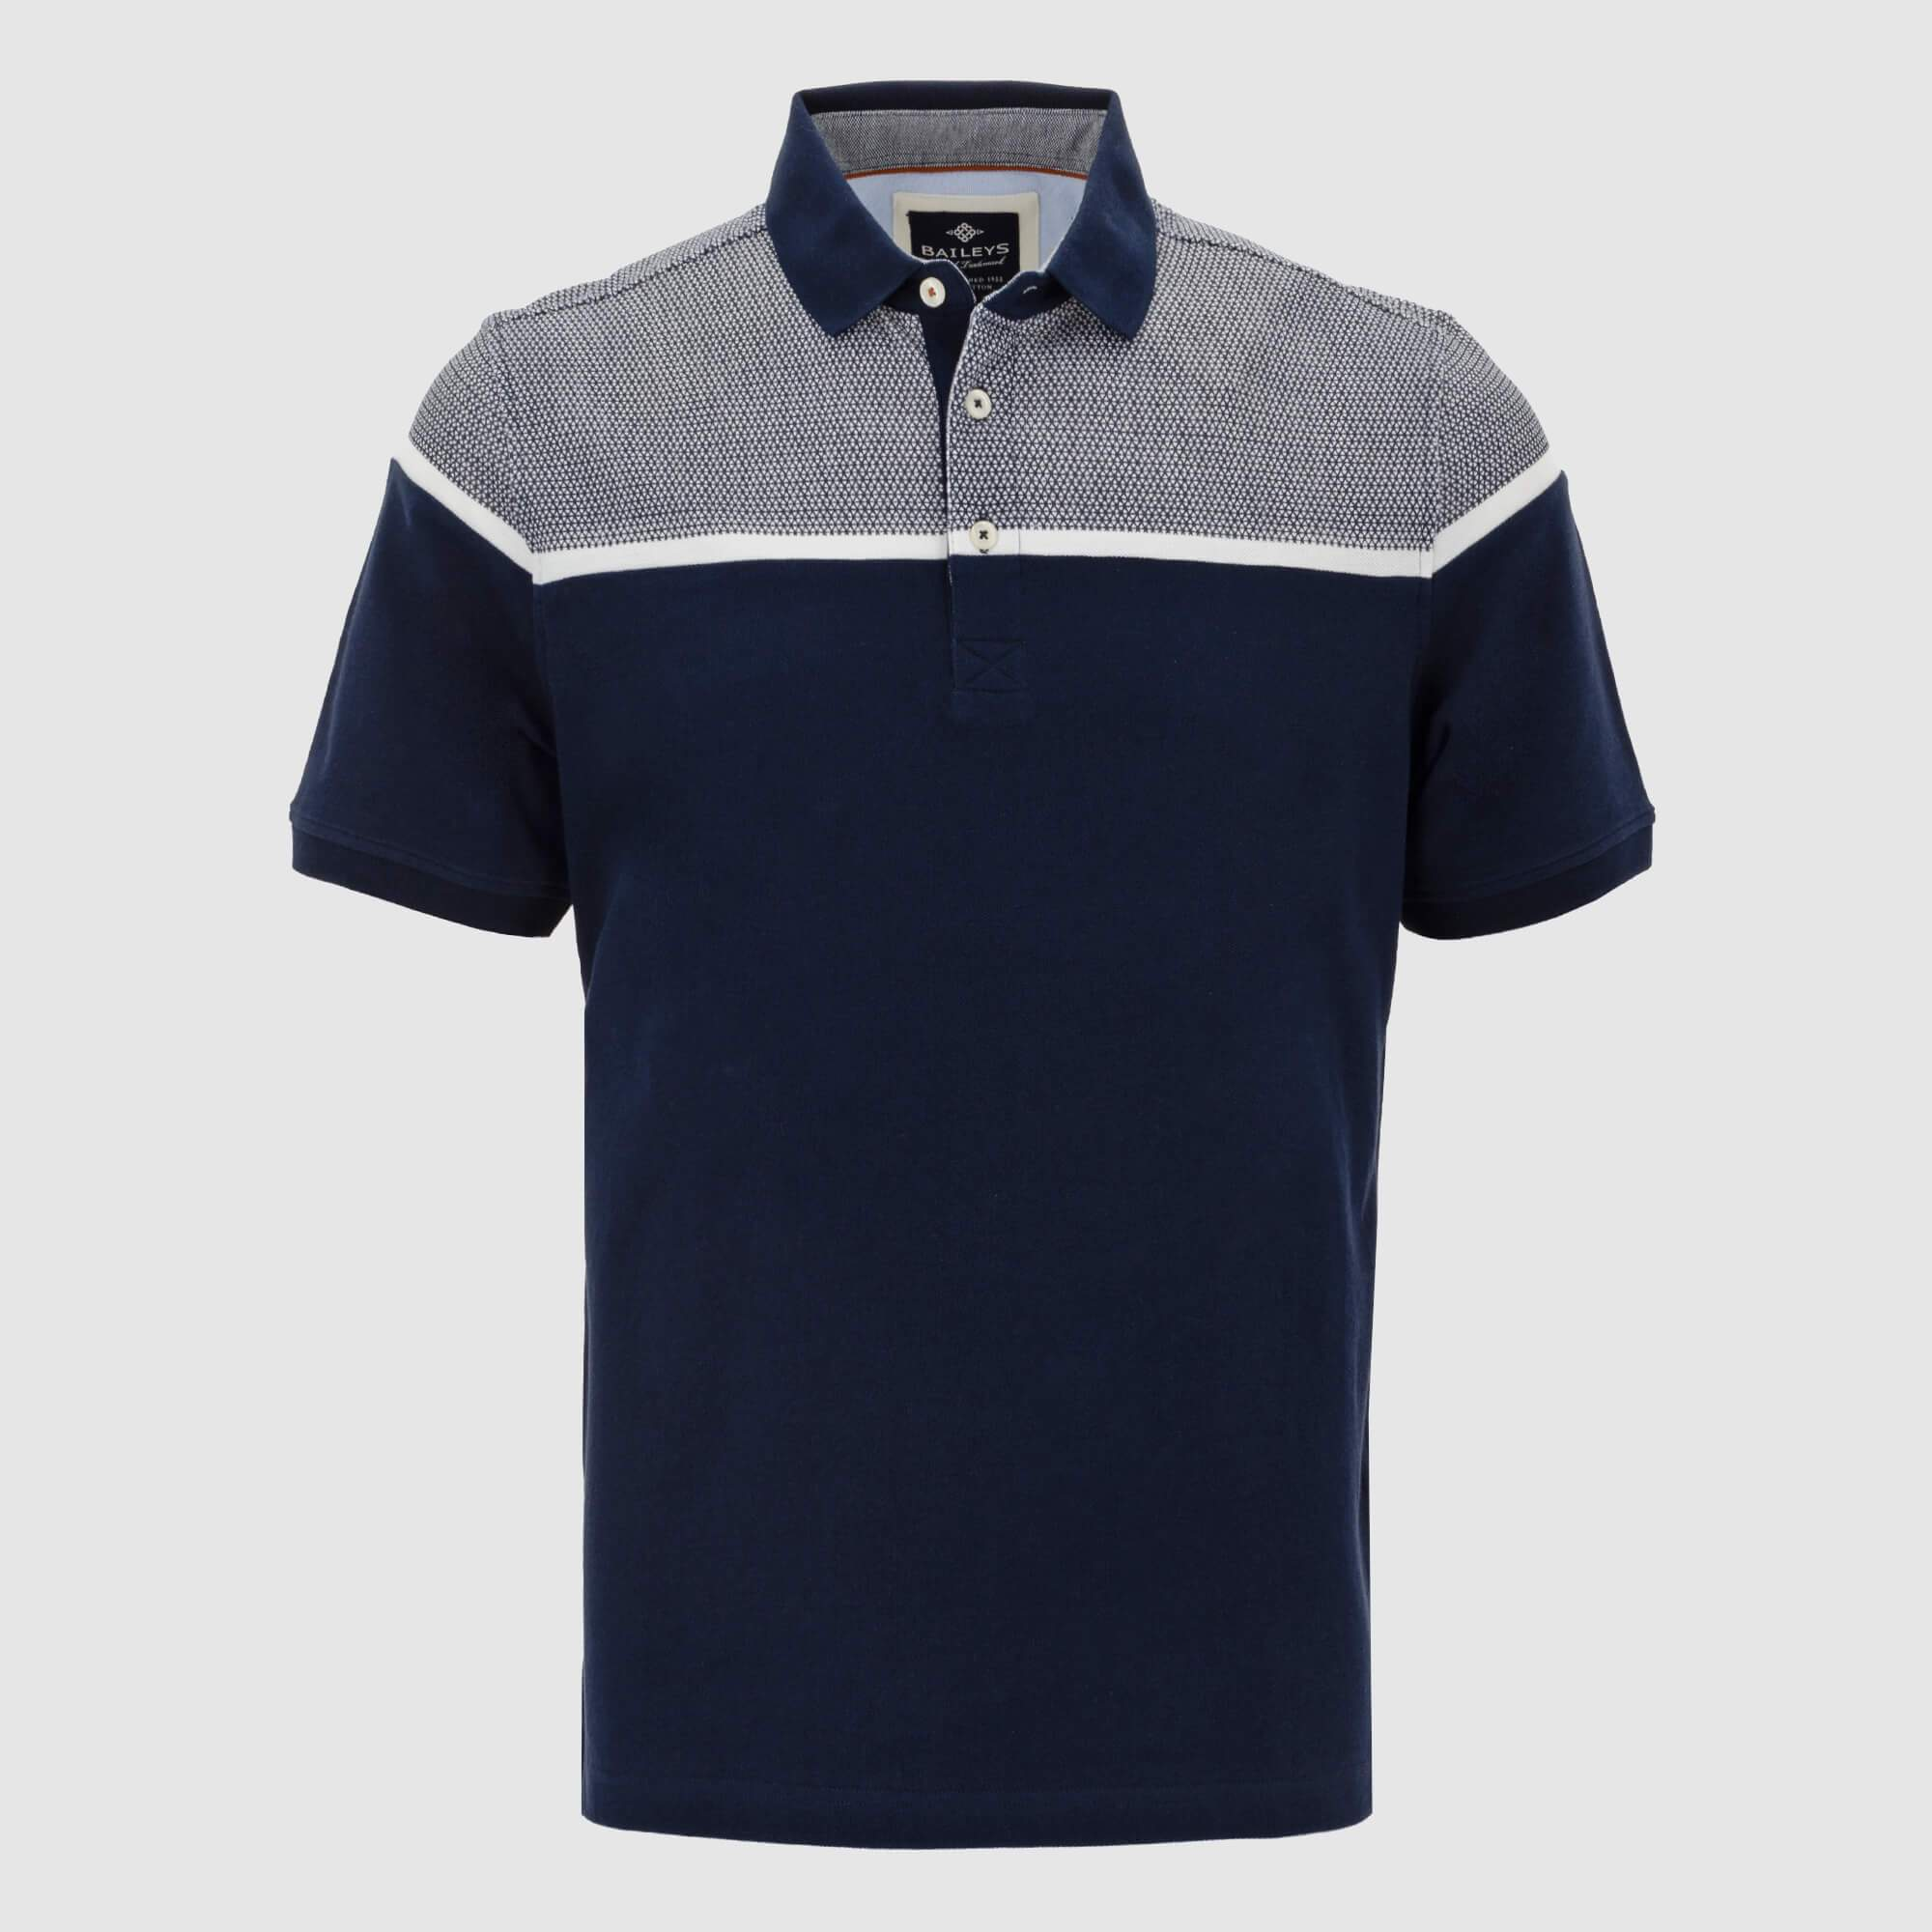 Polo estilo combinado regular fit 105237